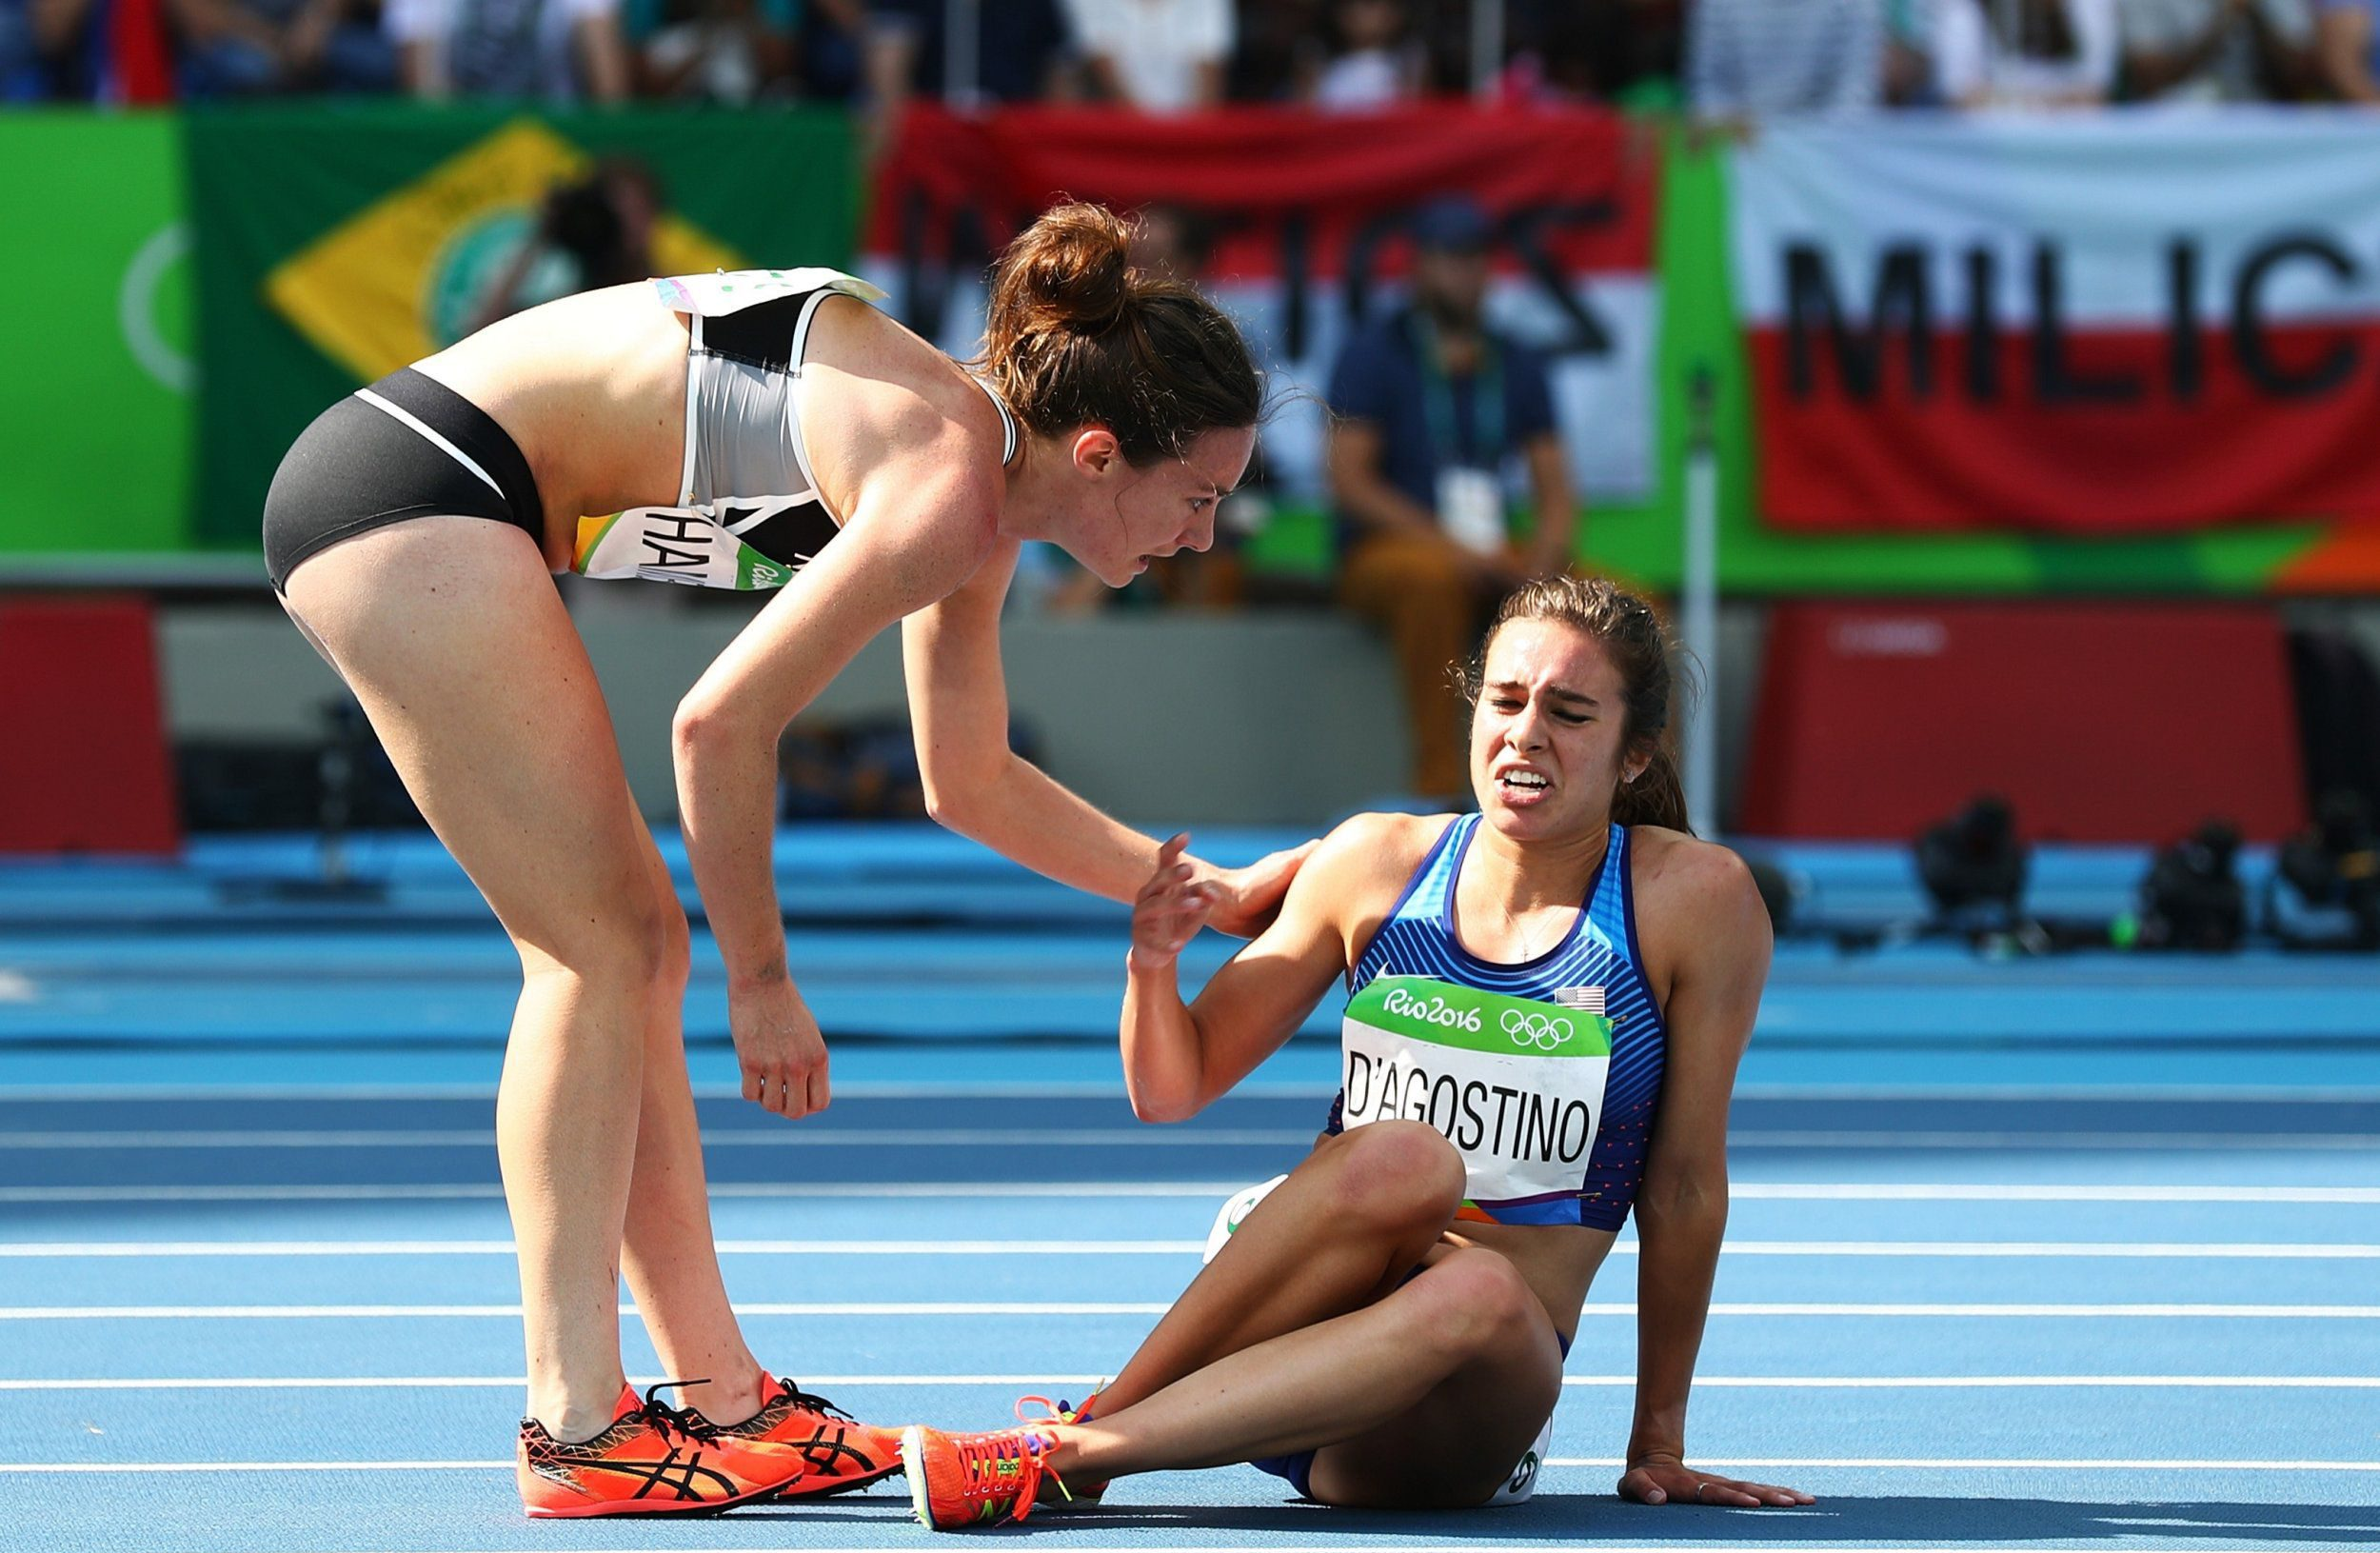 Olympics' most inspirational moment so far sees 5,000m runner help injured rival